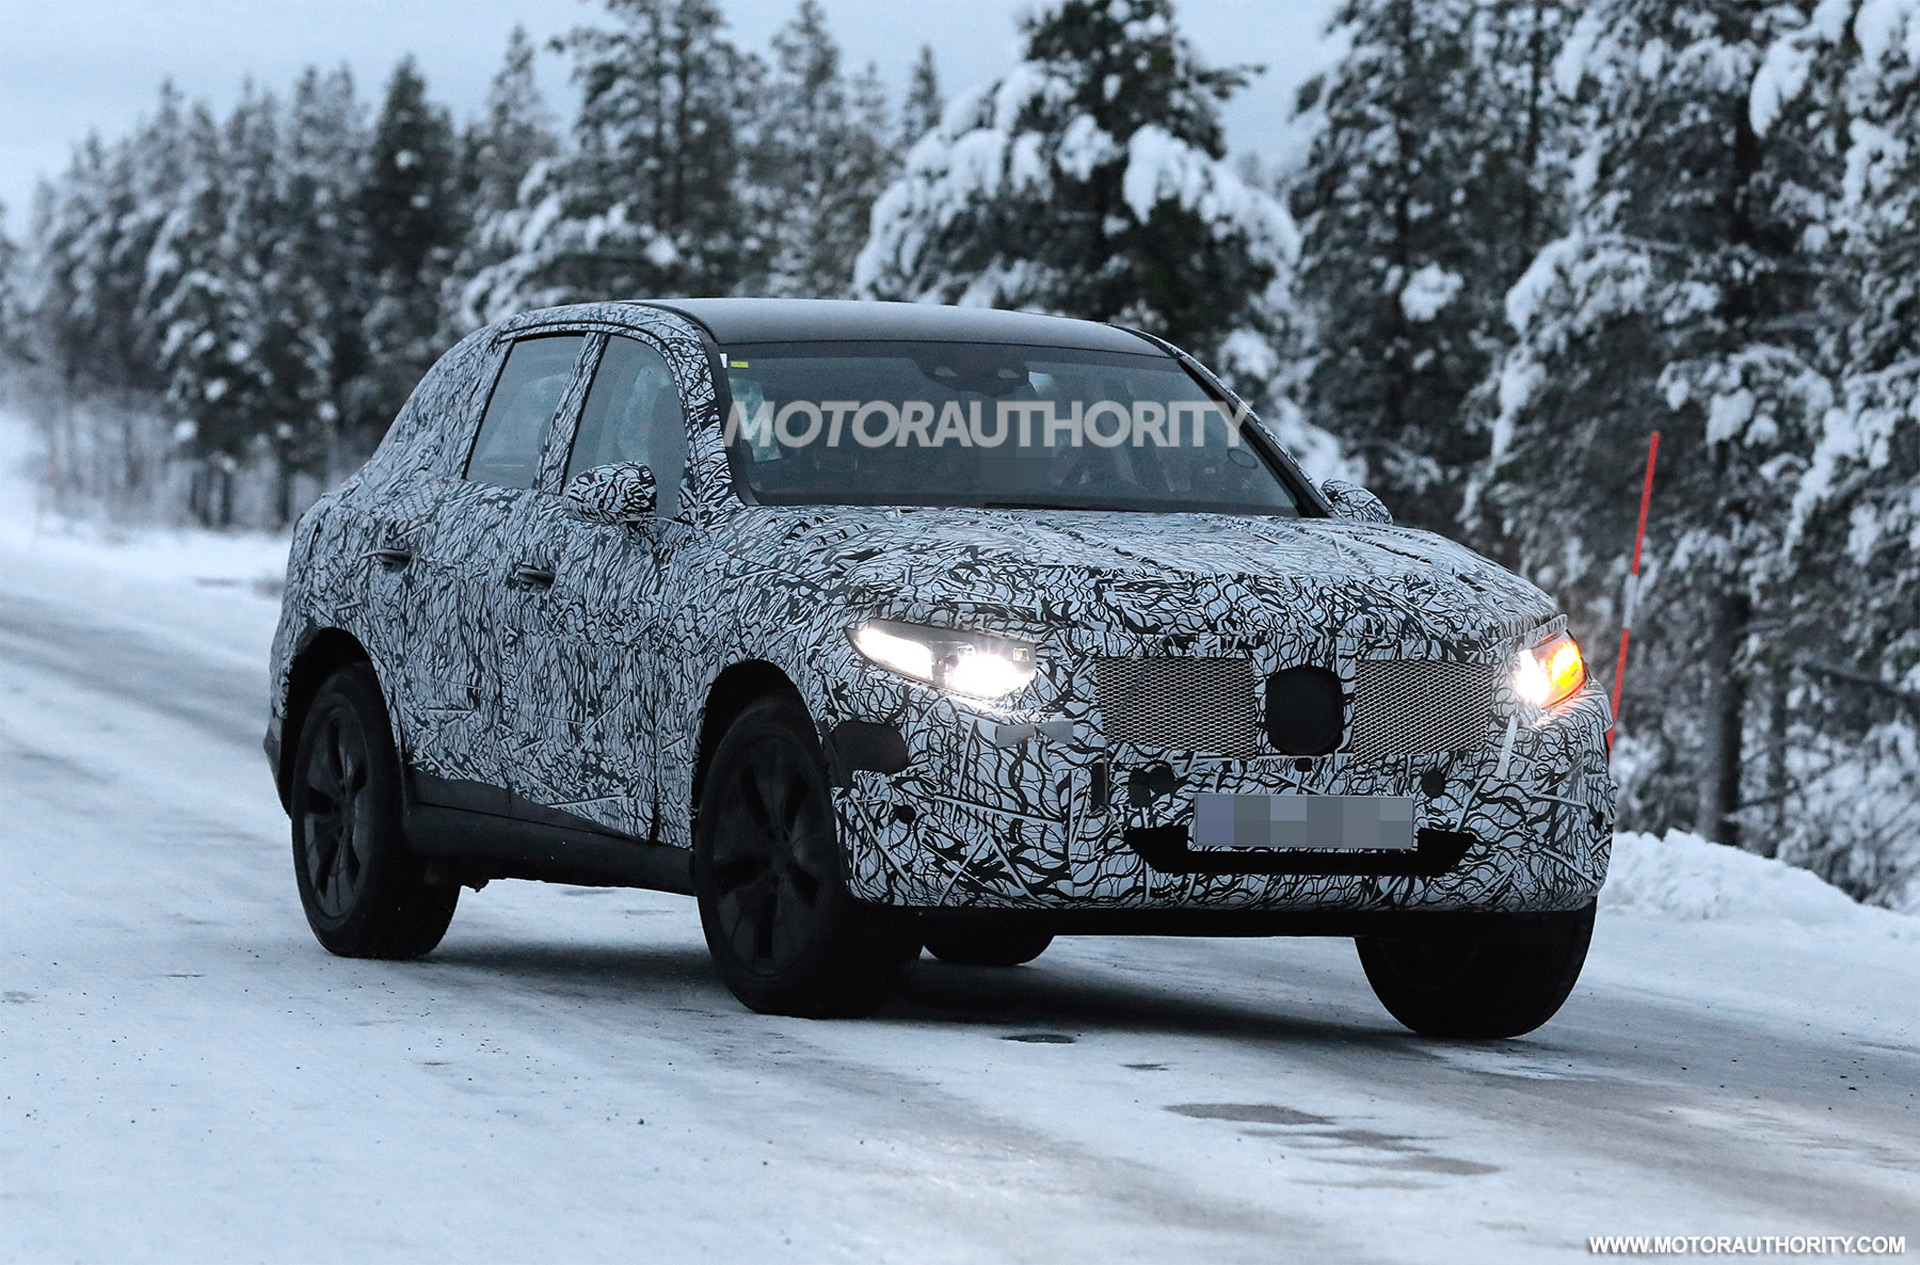 2023 Mercedes-Benz GLC-Class spy shots: Popular crossover coming in for redesign